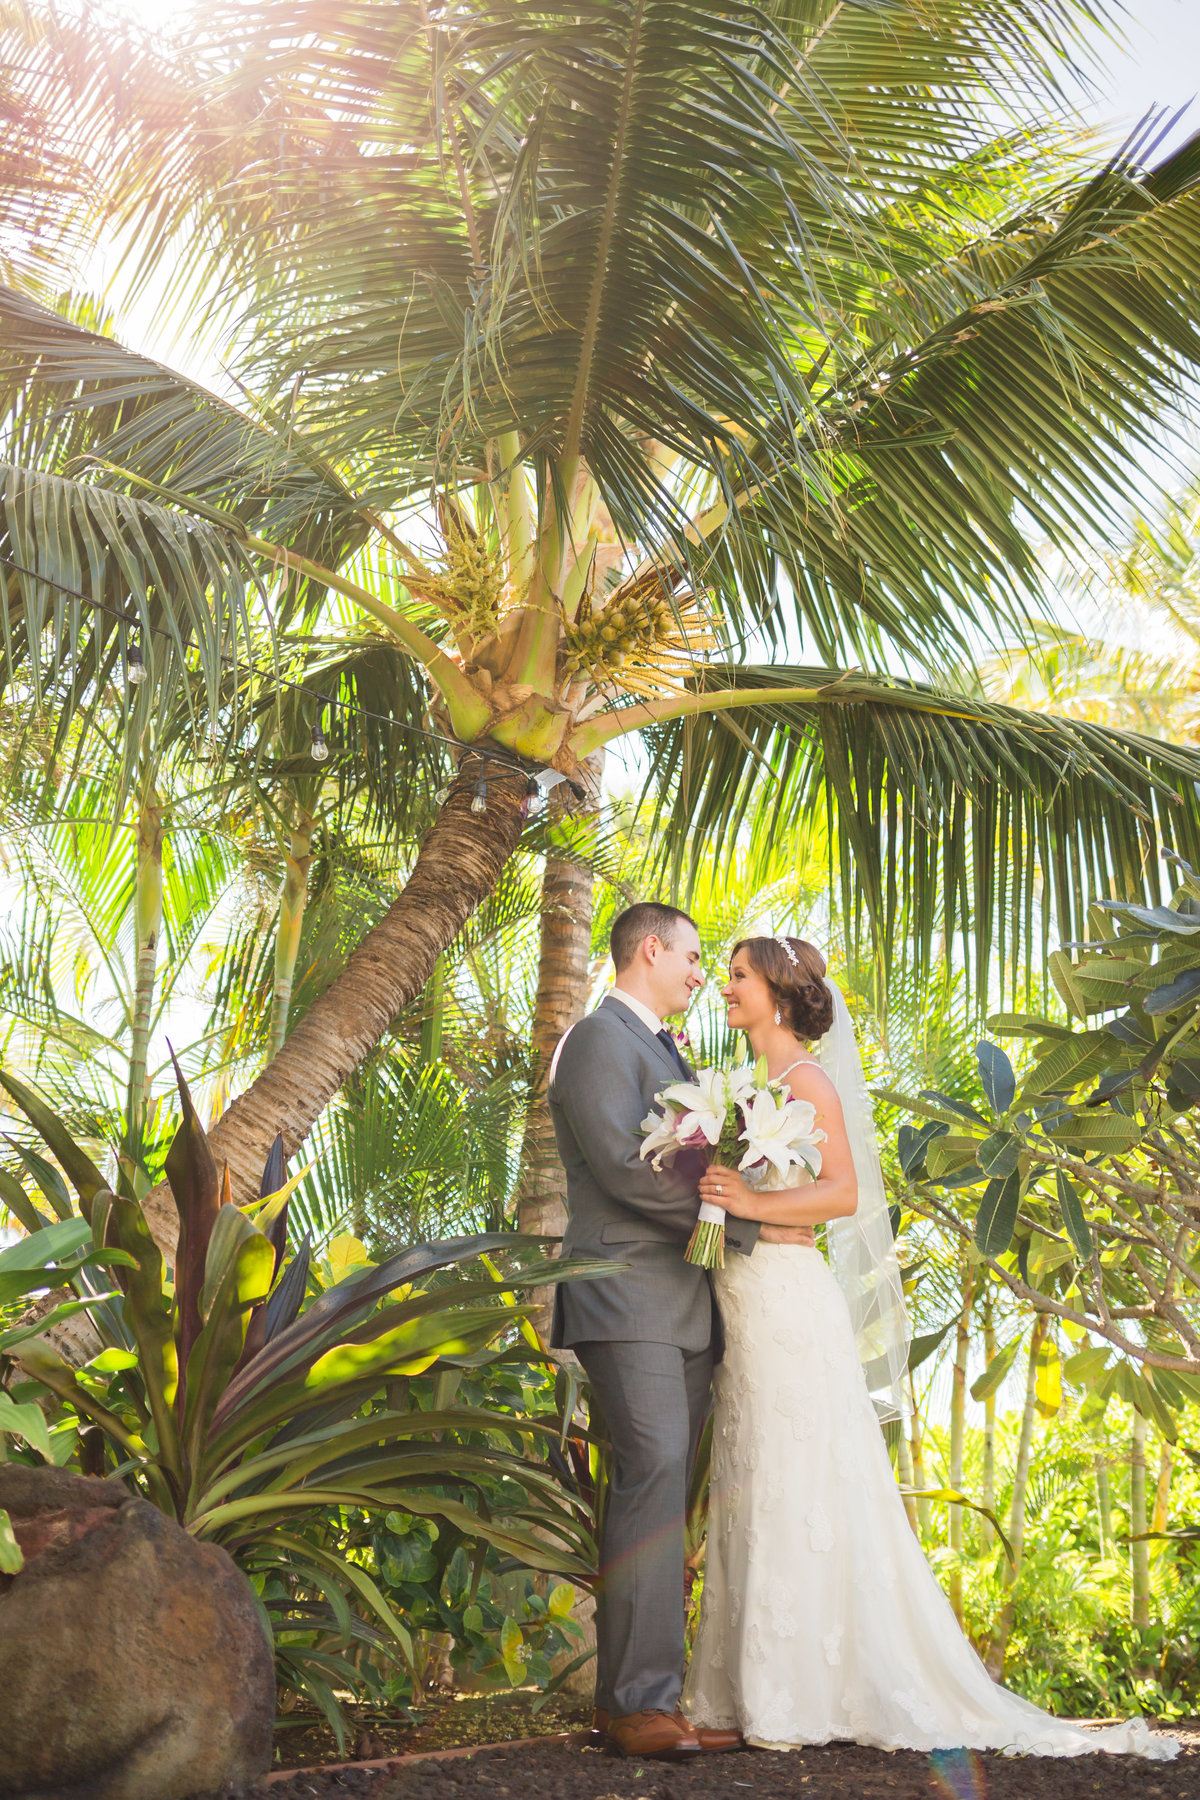 getting married in Maui, Hawaii